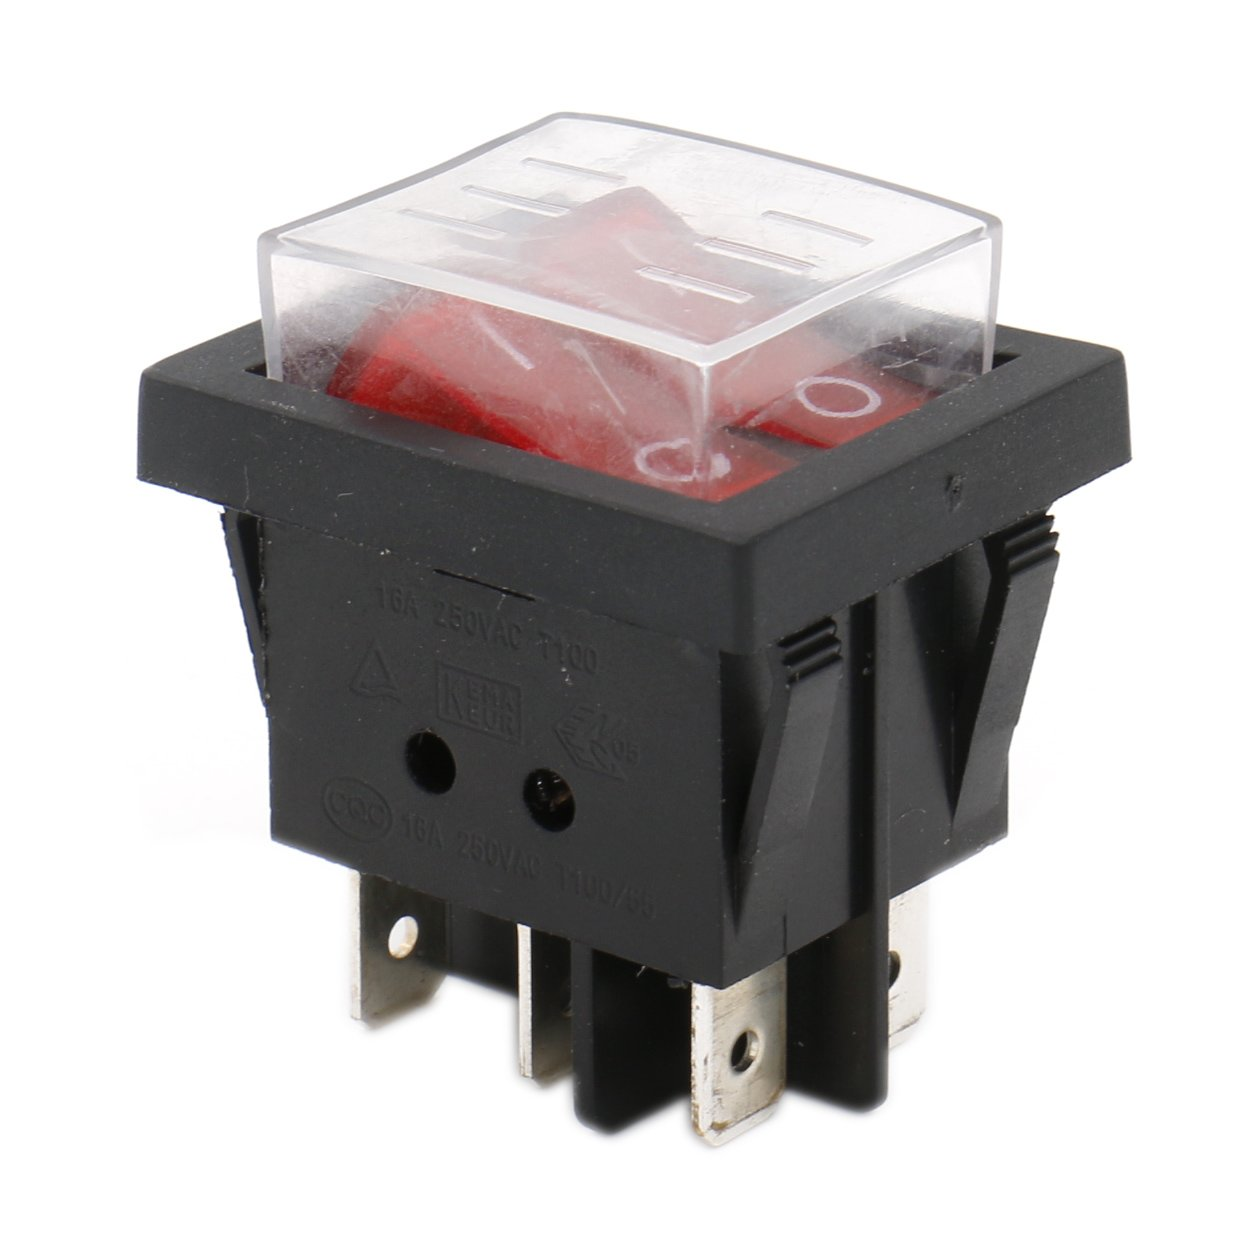 Heschen Double Rocker Switch SPST ON-OFF 6 Terminals Red light 16A 250VAC with Waterproof Cover Ningbo Master Soken Electrical Co.Ltd RK1-22-HS-D